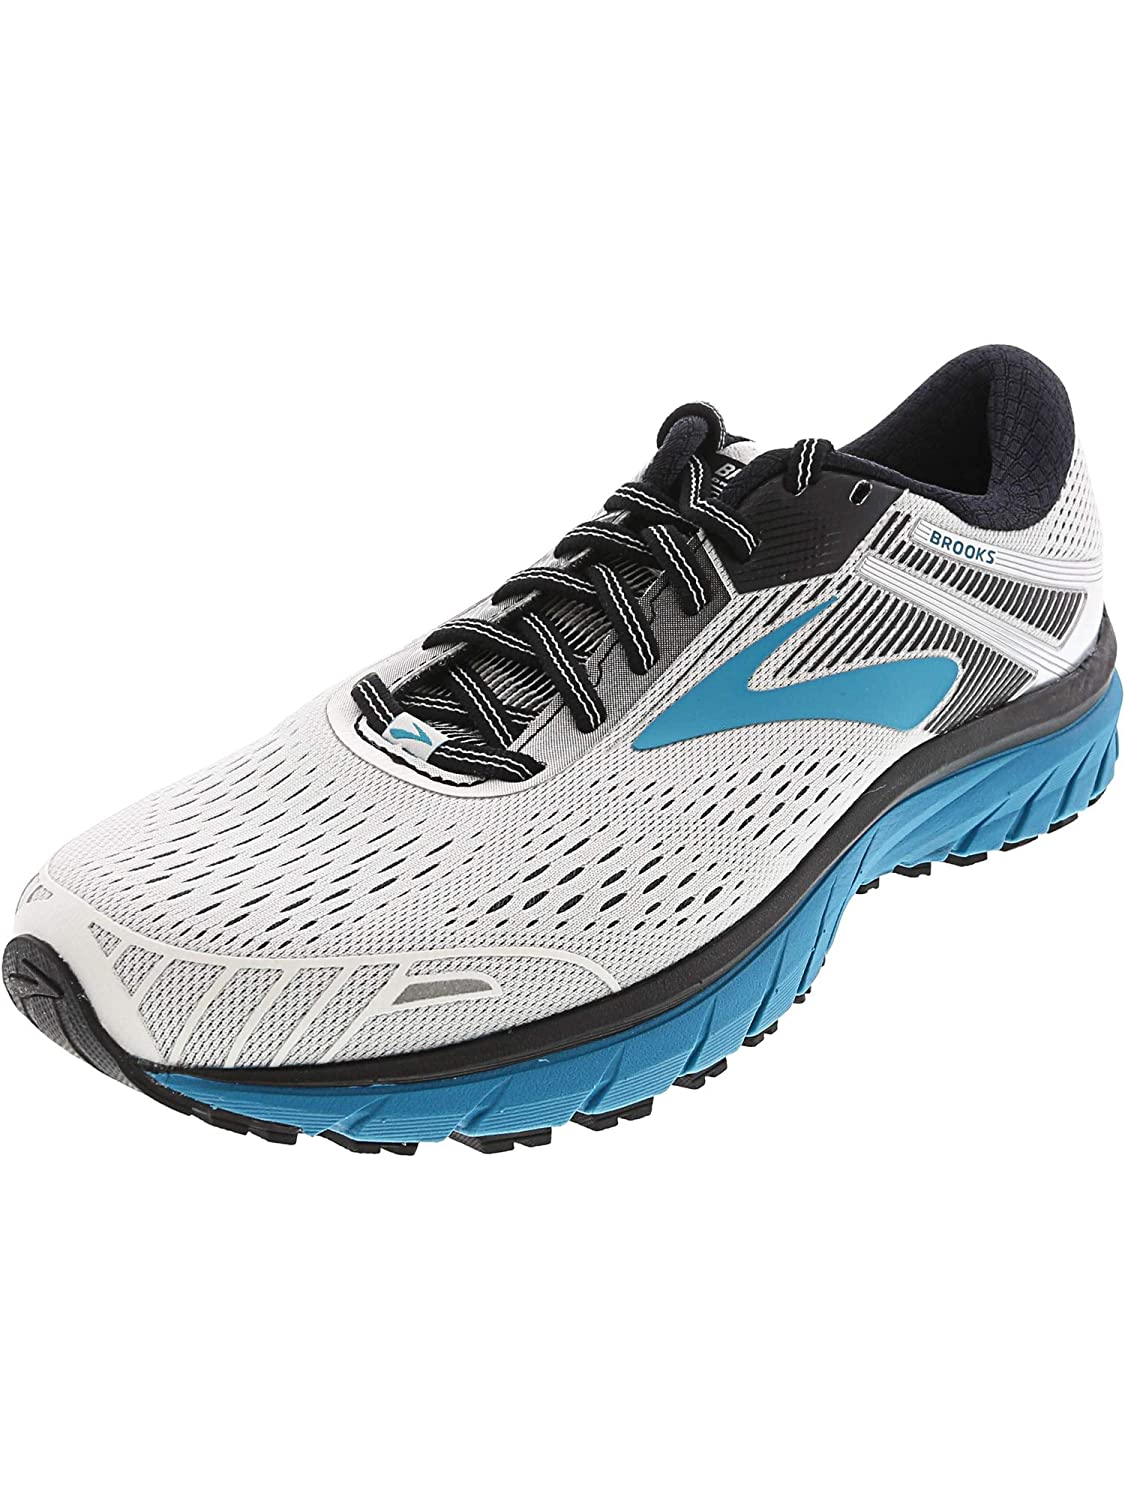 White   Black   Teal Brooks Women's Ghost 11 Running shoes